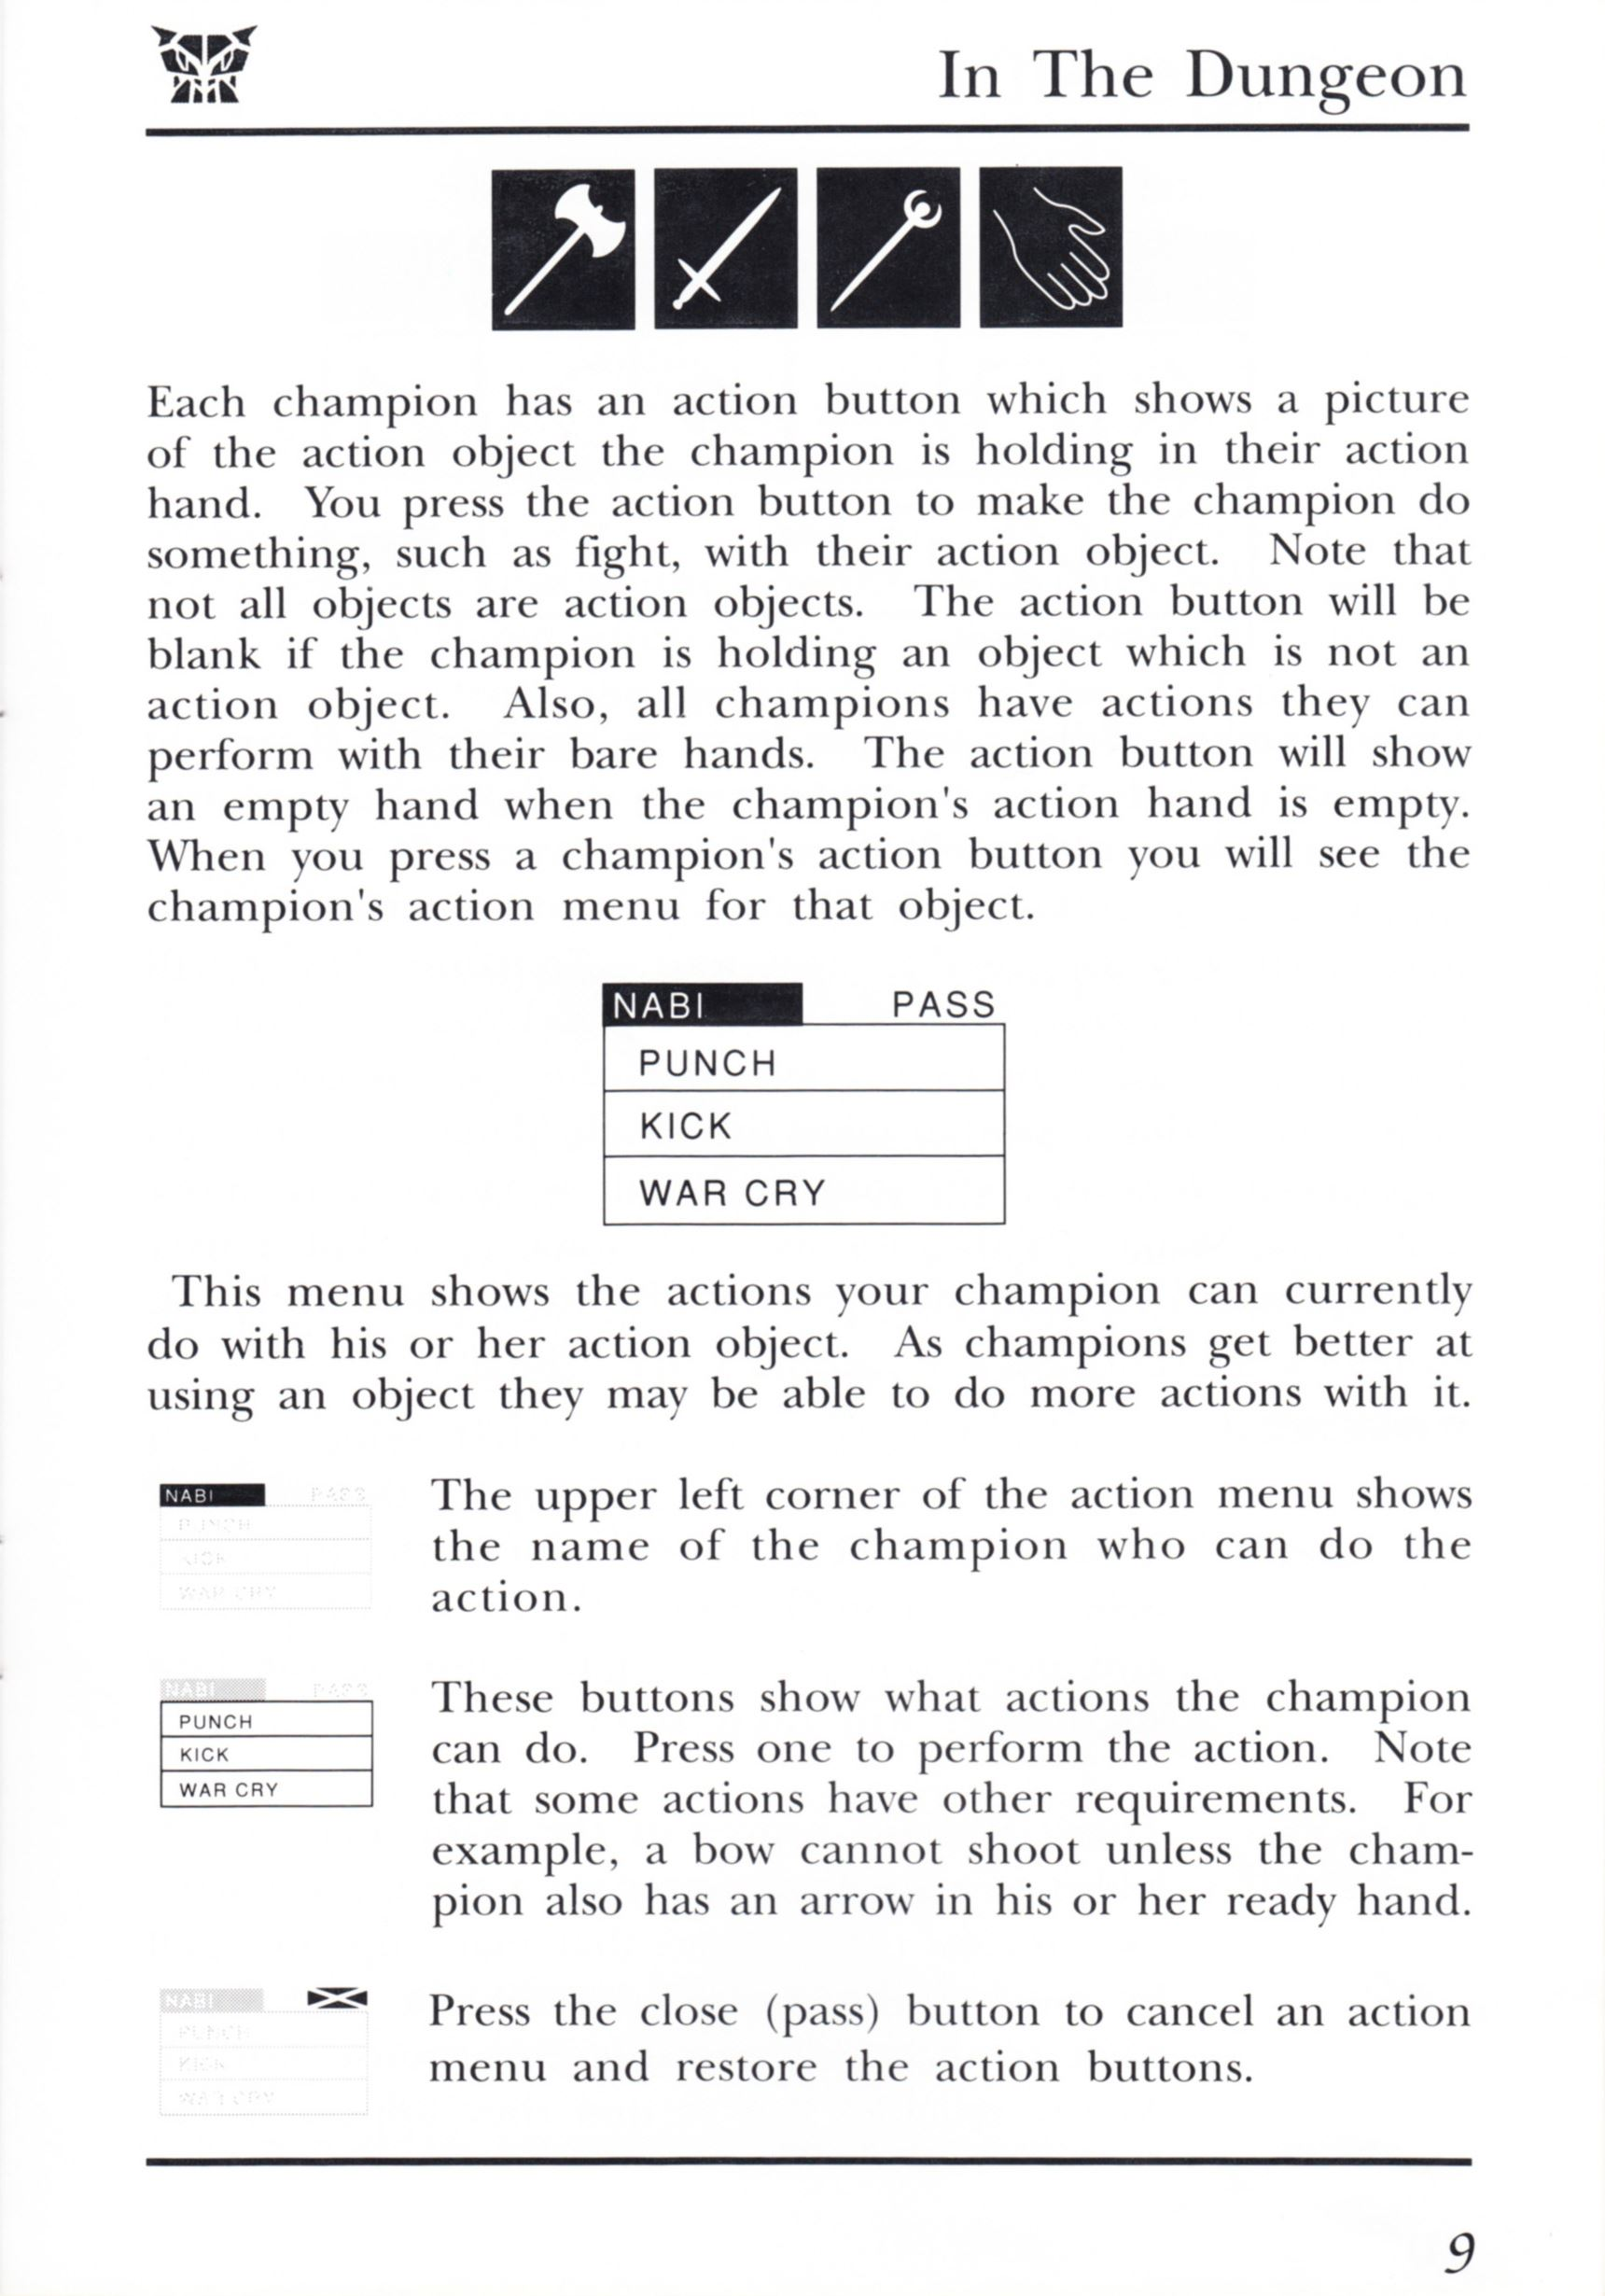 Game - Dungeon Master - UK - PC - Psygnosis - Manual - Page 029 - Scan